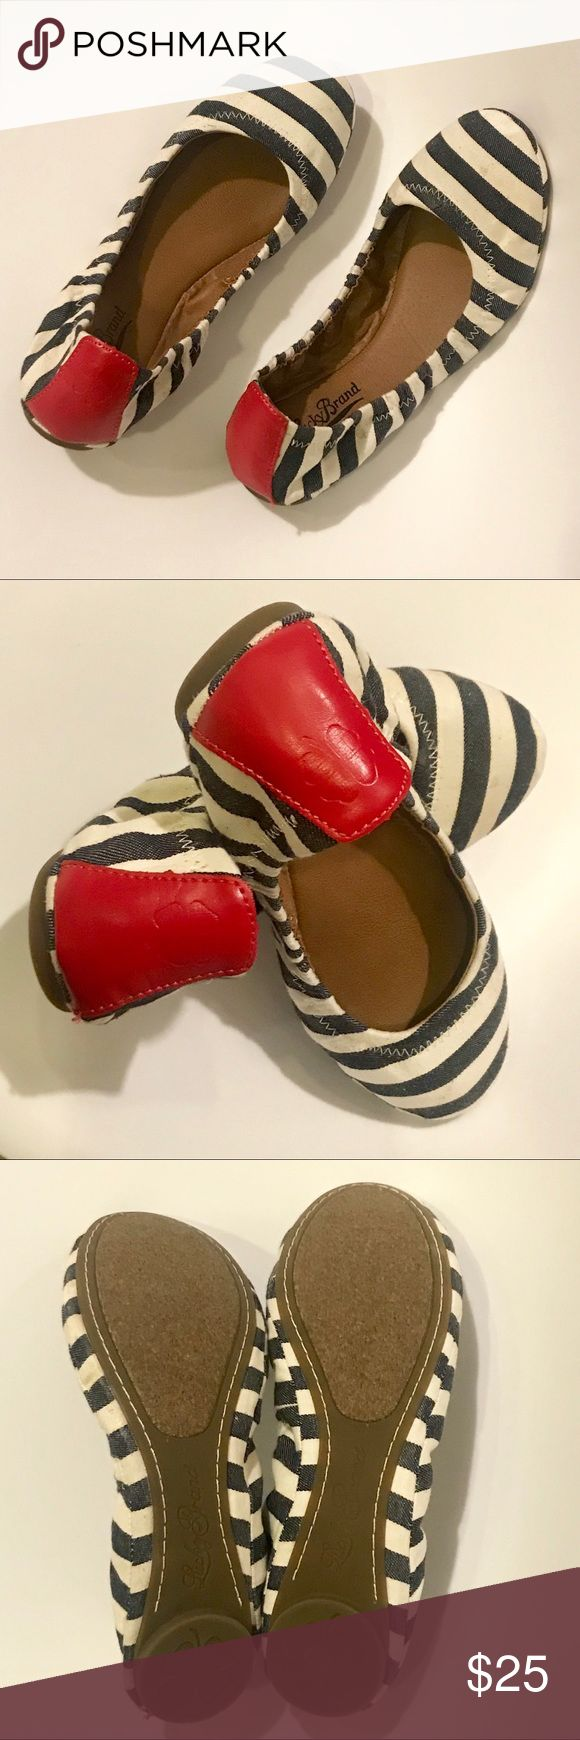 Lucky Brand Erin Striped Ballet Flats 7.5 Brand new, tried on but never worn outside. Very cute and comfortable flats. Ready to ship! Lucky Brand Shoes Flats & Loafers